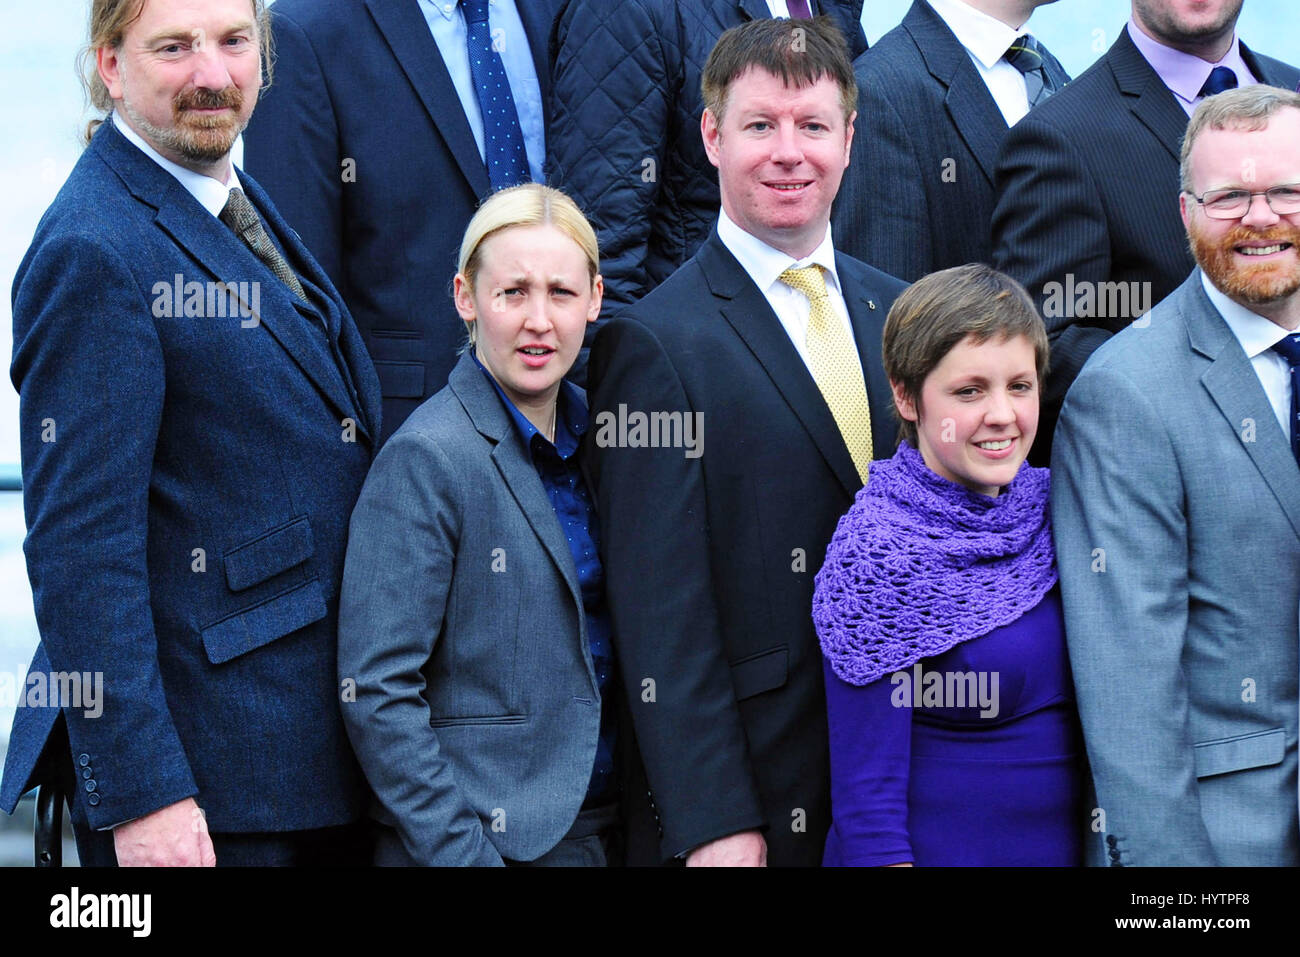 Mhairi Black (2nd L), the 20-year-old student who becomes the youngest member of Parliament since 1667, pictured - Stock Image